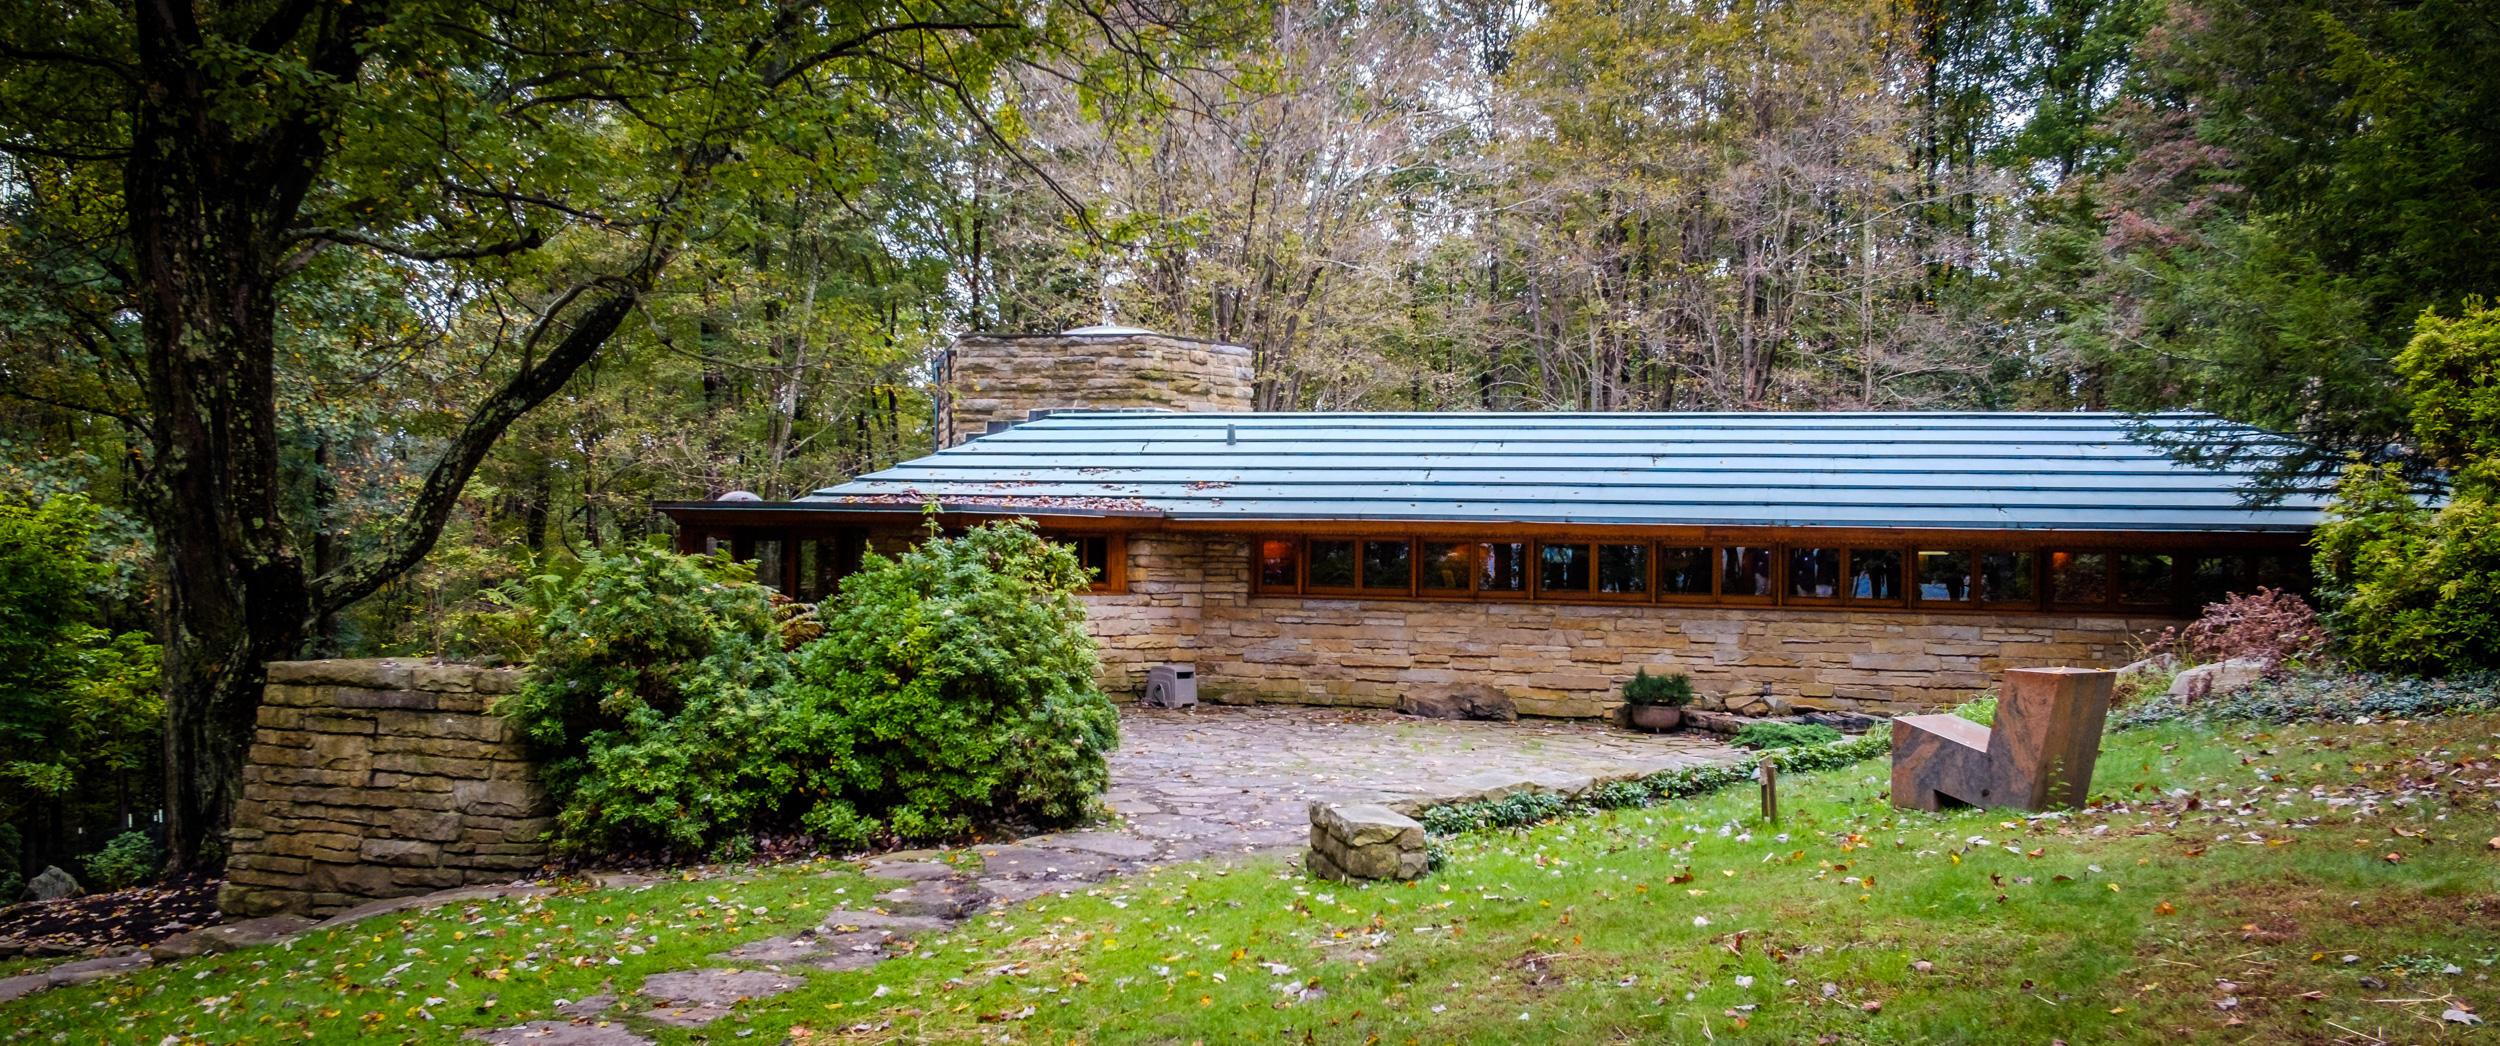 Color photograph of Kentuck Knob, aka Hagan House, showing the bedroom wing from the garden. Architect - Frank Lloyd Wright.